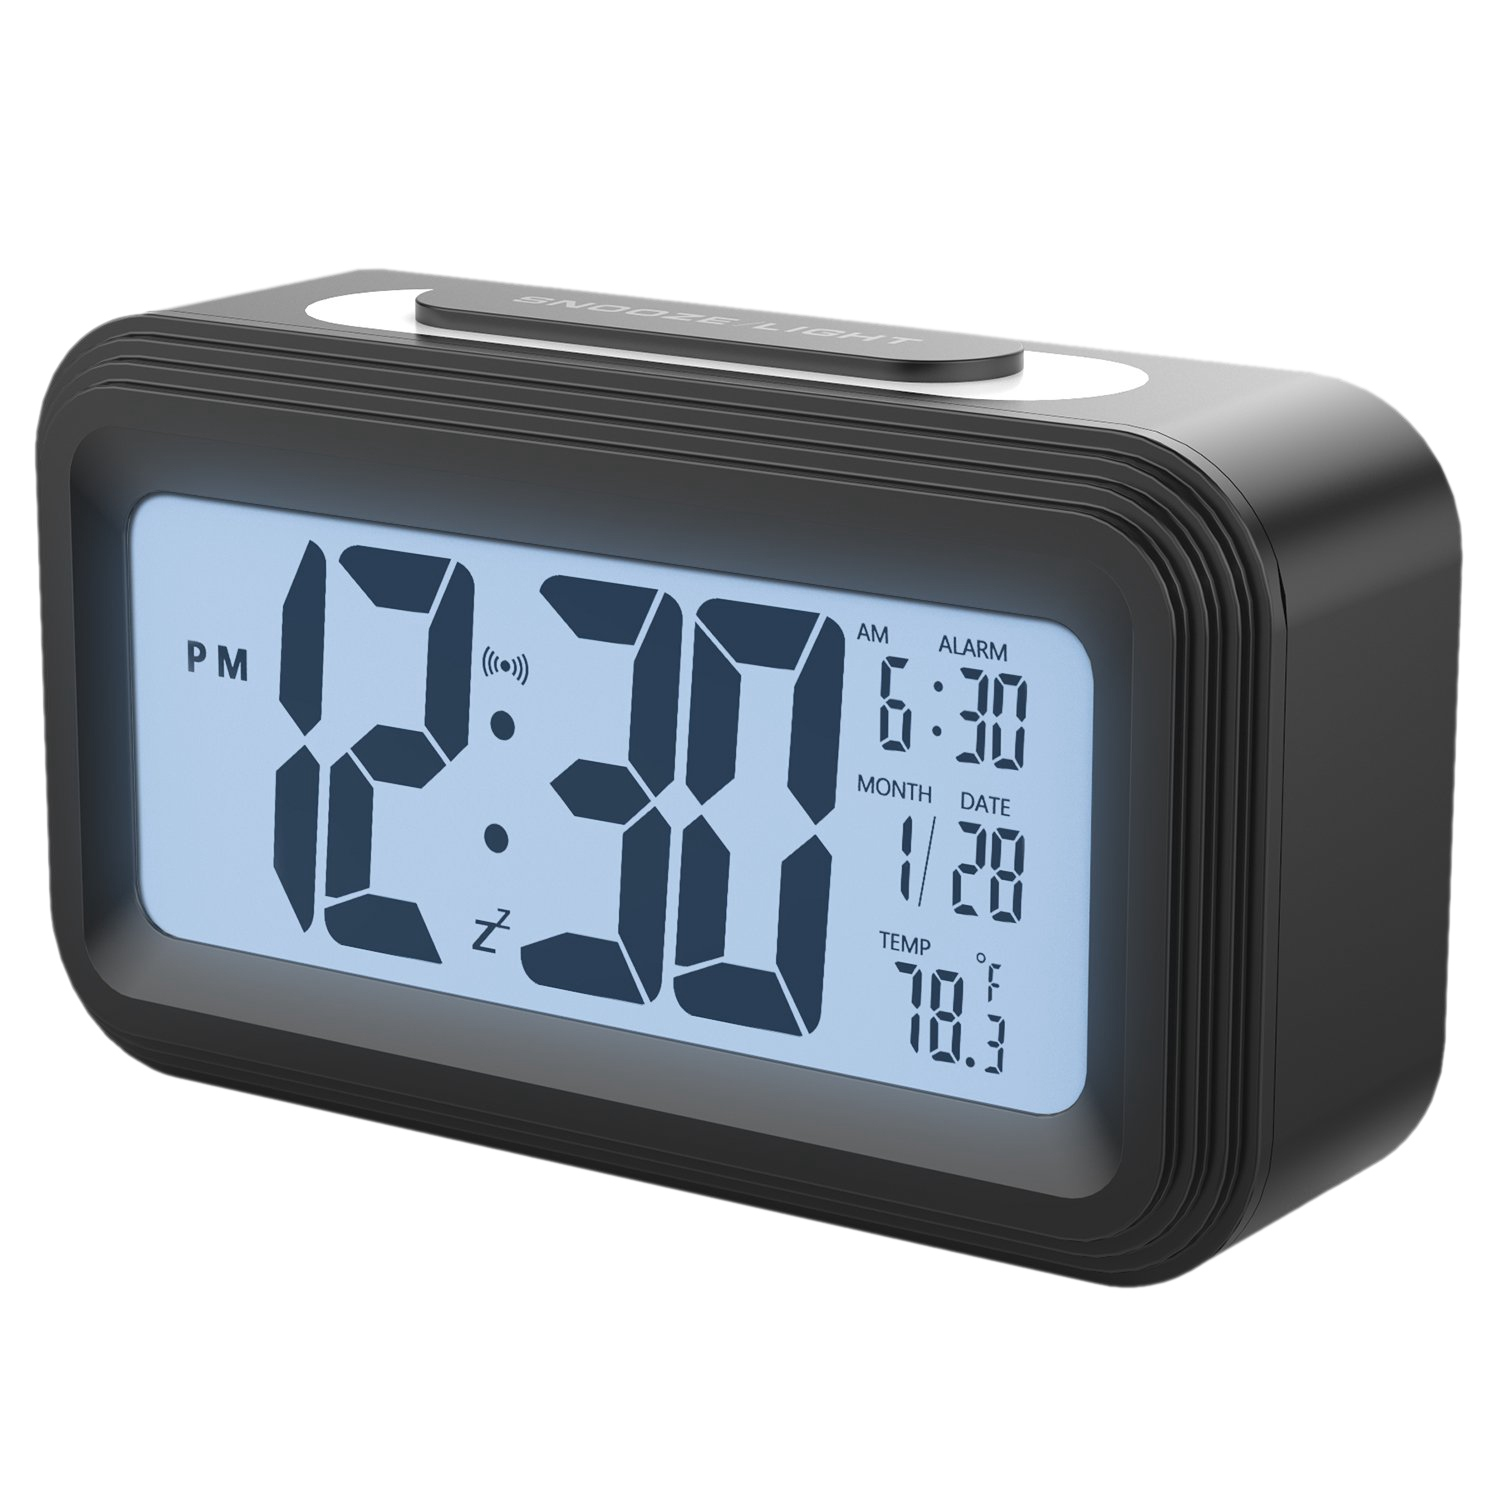 Upgrade Version Battery Operated Alarm Clock Electronic Large Lcd Display Digital Alarm Clocks With Snooze